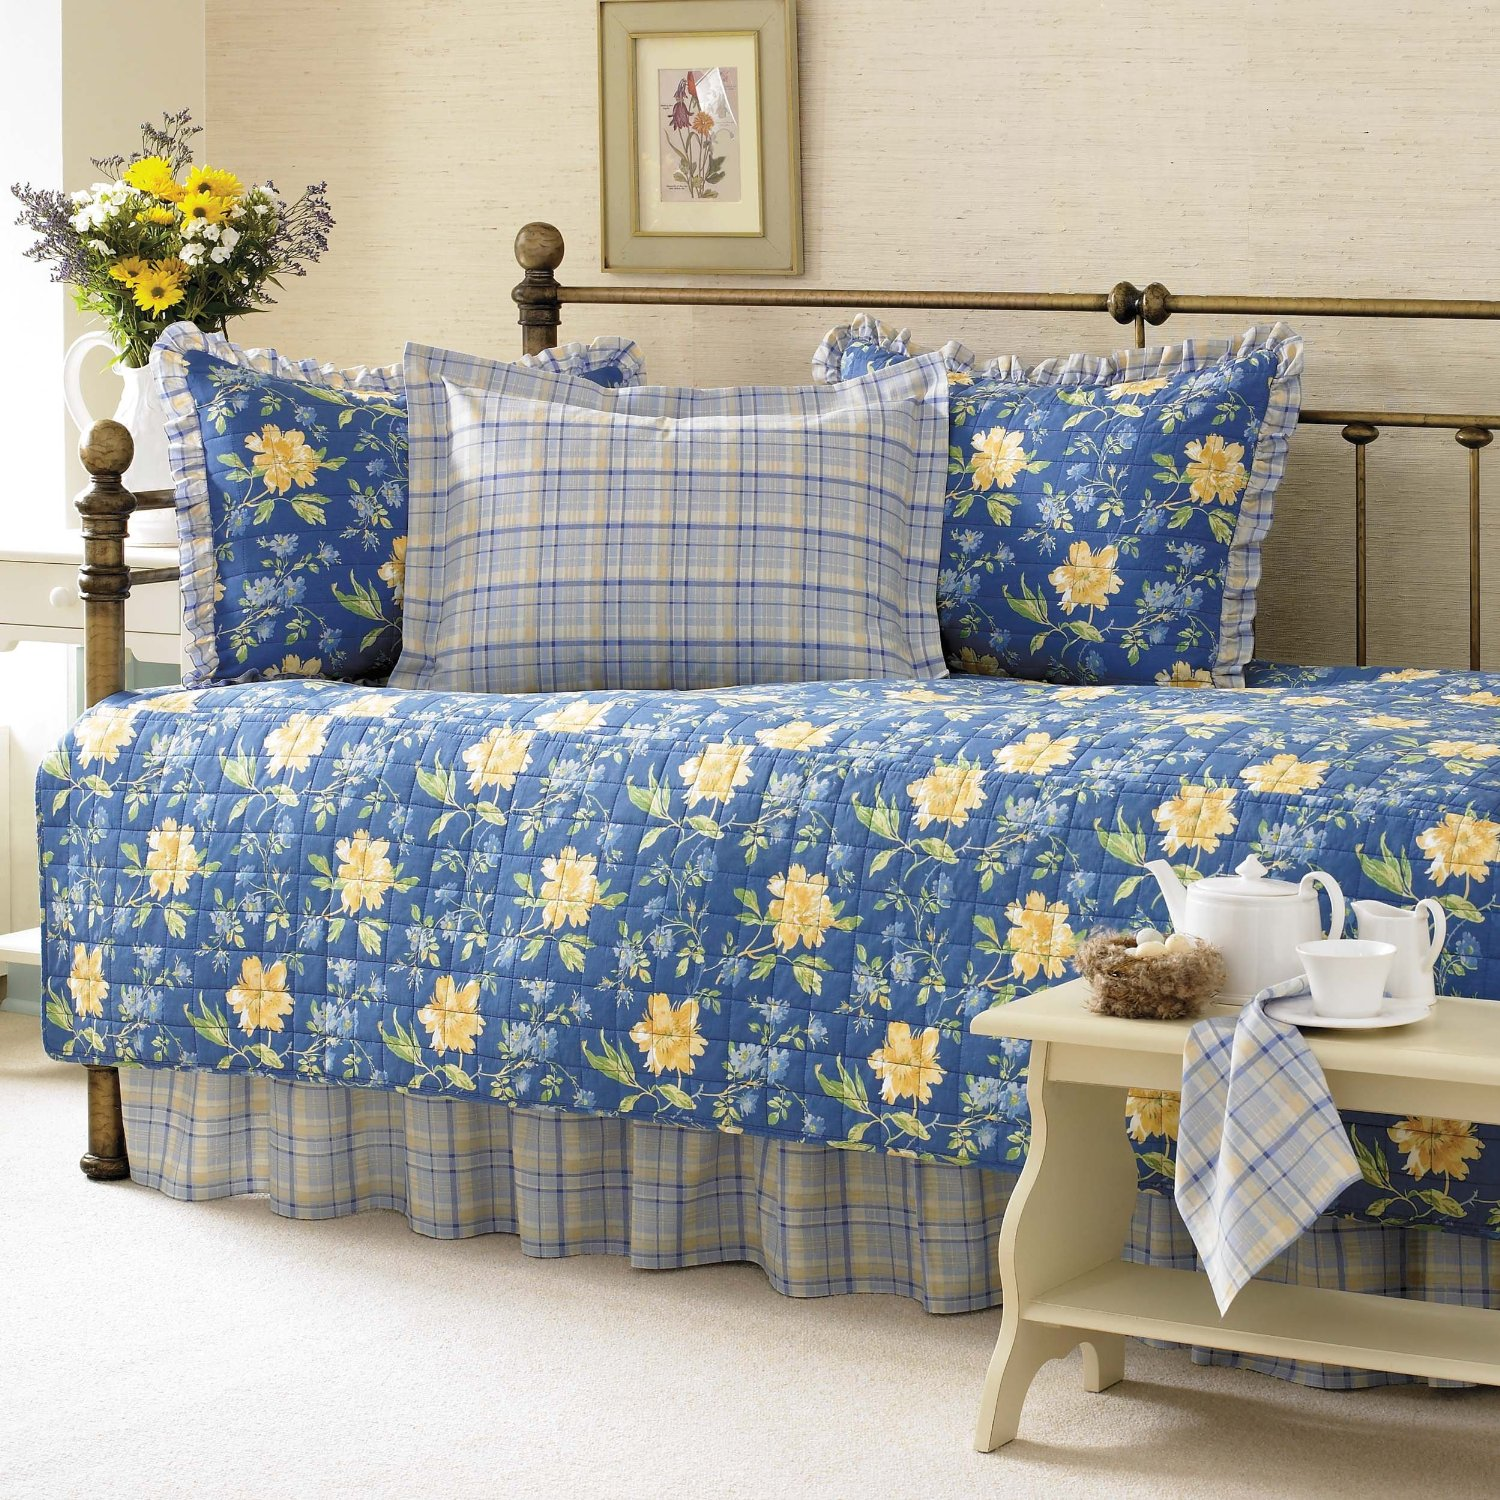 3. Laura Ashley 5-Piece Emilie Daybed Cover Set